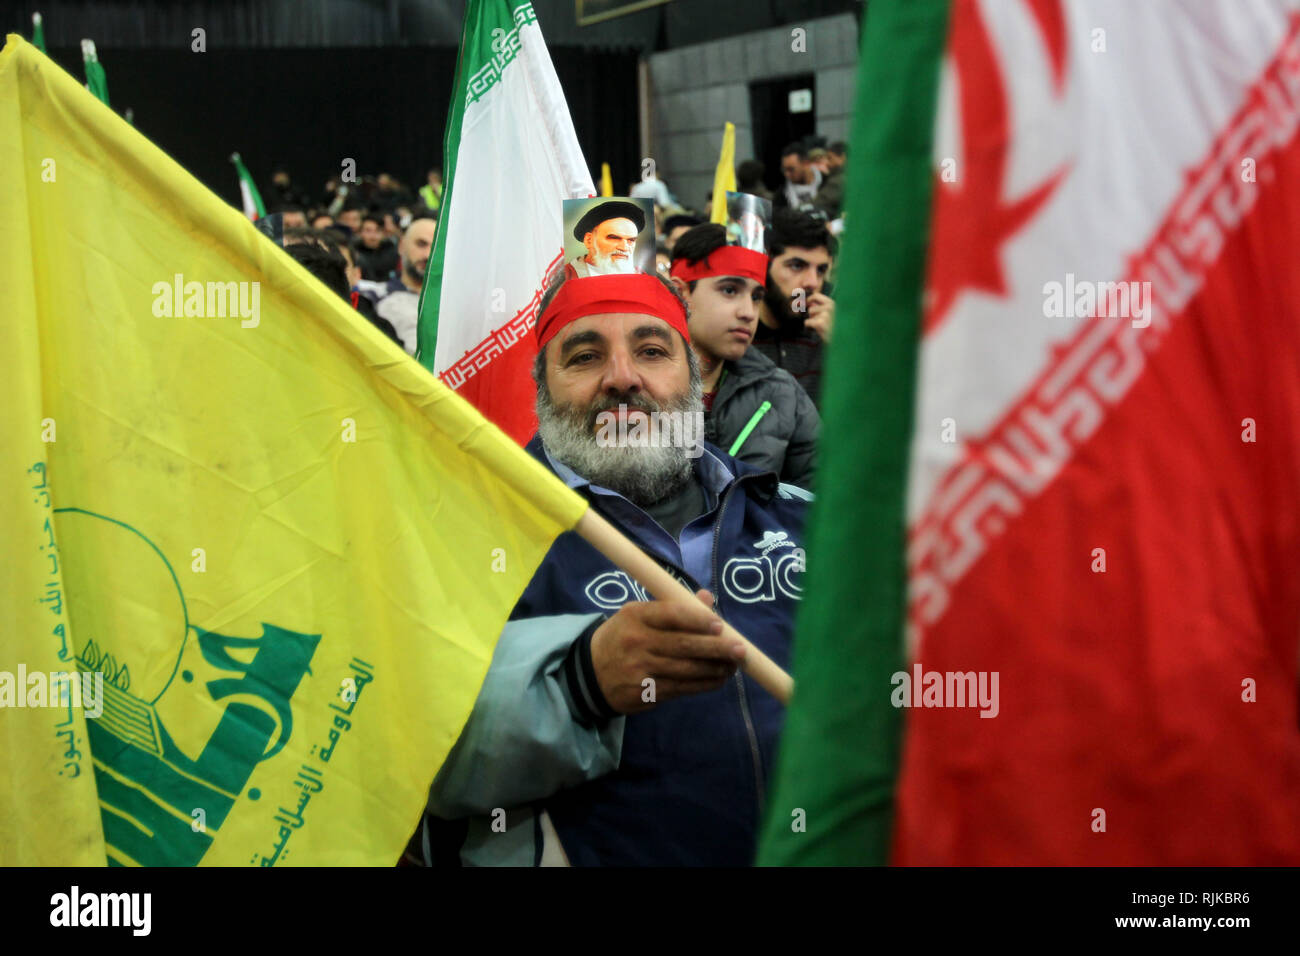 06 February 2019, Lebanon, Beirut: A man with a picture, strapped to his head, of Ayatollah Khomeini, former Supreme Leader of Iran and leader of the 1979 Iranian Revolution, takes part in a rally by supporters of Hezbollah, the pro-Iranian Lebanese Islamist political party and militant group, to mark the 40th anniversary of the Iranian Islamic Revolution which toppled Mohammad Reza Pahlavi, the last Shah of Iran. Photo: Marwan Naamani/dpa - Stock Image